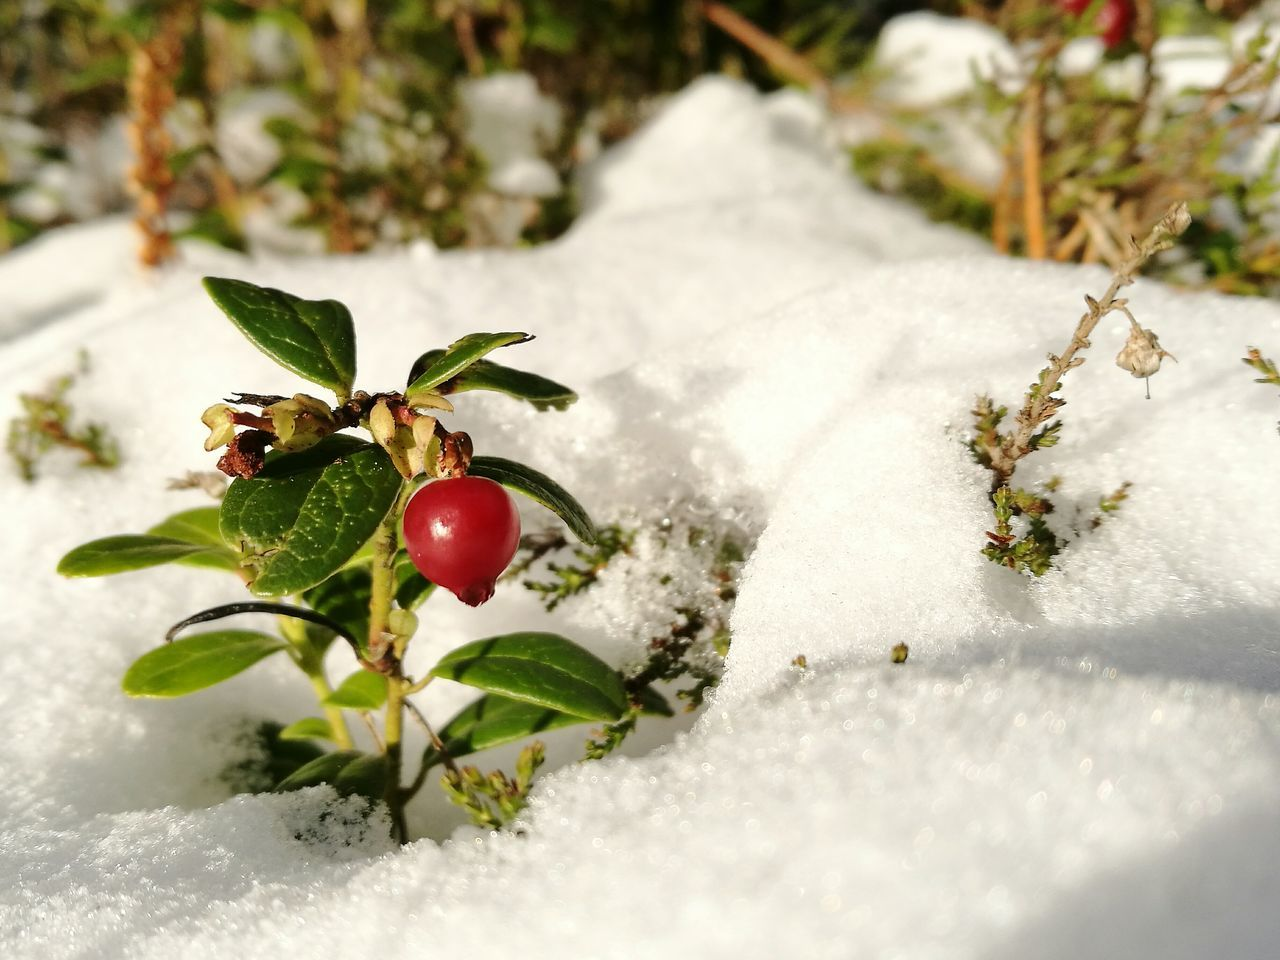 Winter Cold Temperature Snow Red Frozen Close-up Red Berries And Snow Berries In Snow Cowberry Evergreen Christmas